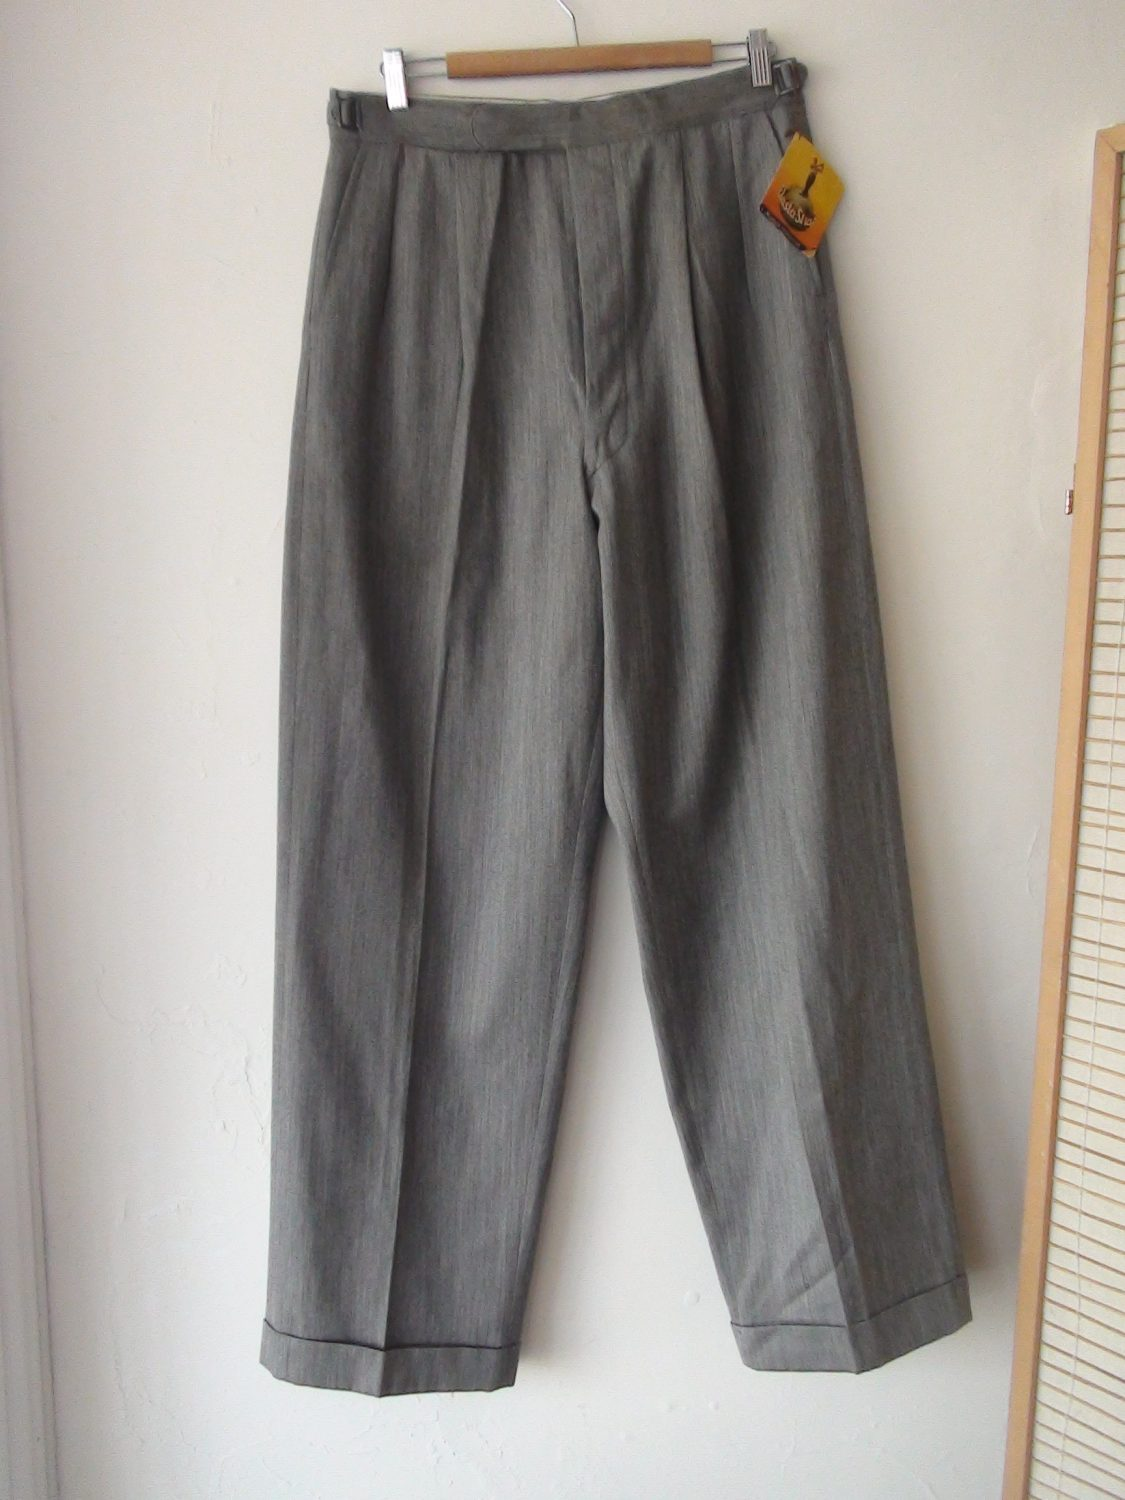 a45207f2 ORIGINAL 1940S MEN'S PANTS 34 X 31